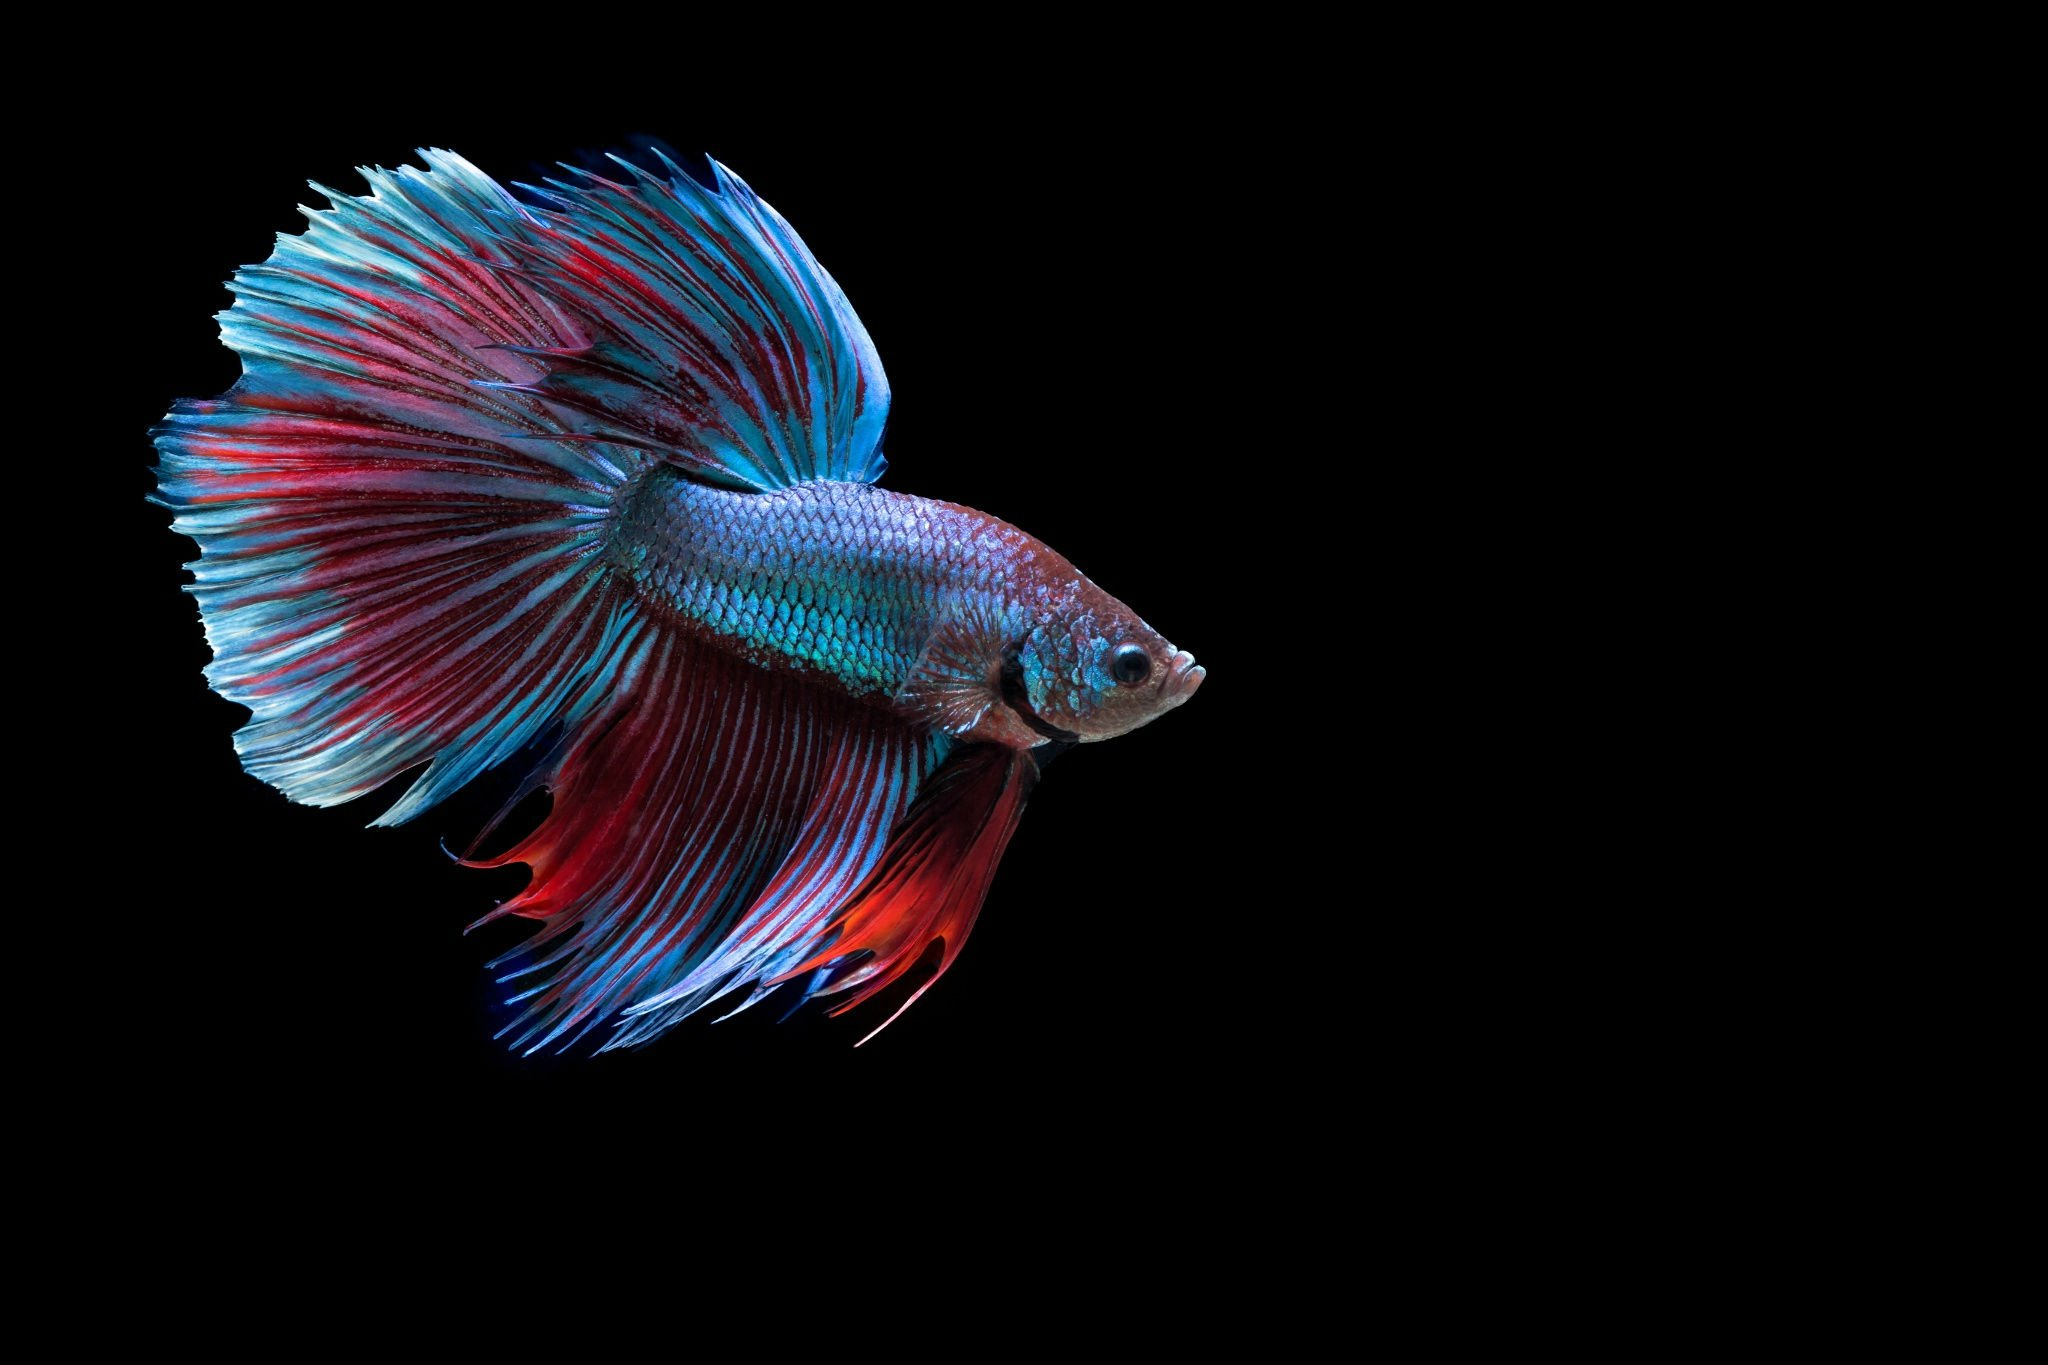 20 siamese fighting fish hd wallpapers background imagessiamese fighting fish · hd wallpaper background image id 771968